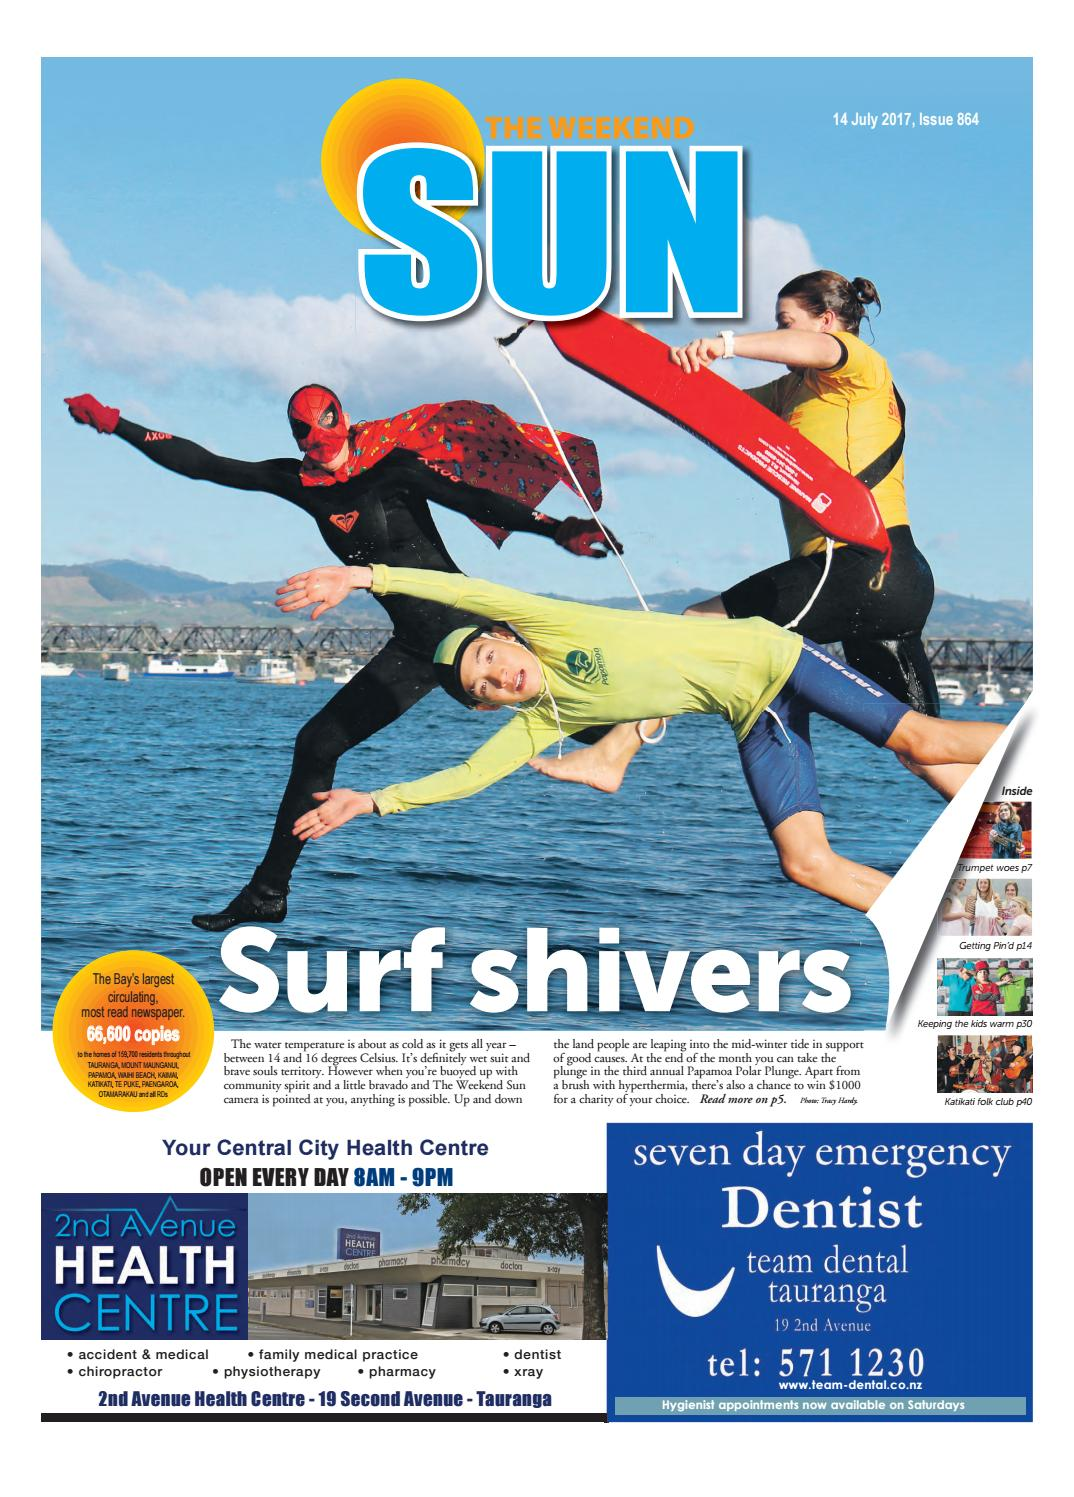 The Weekend Sun 14 July 2017 By Sunlive Issuu